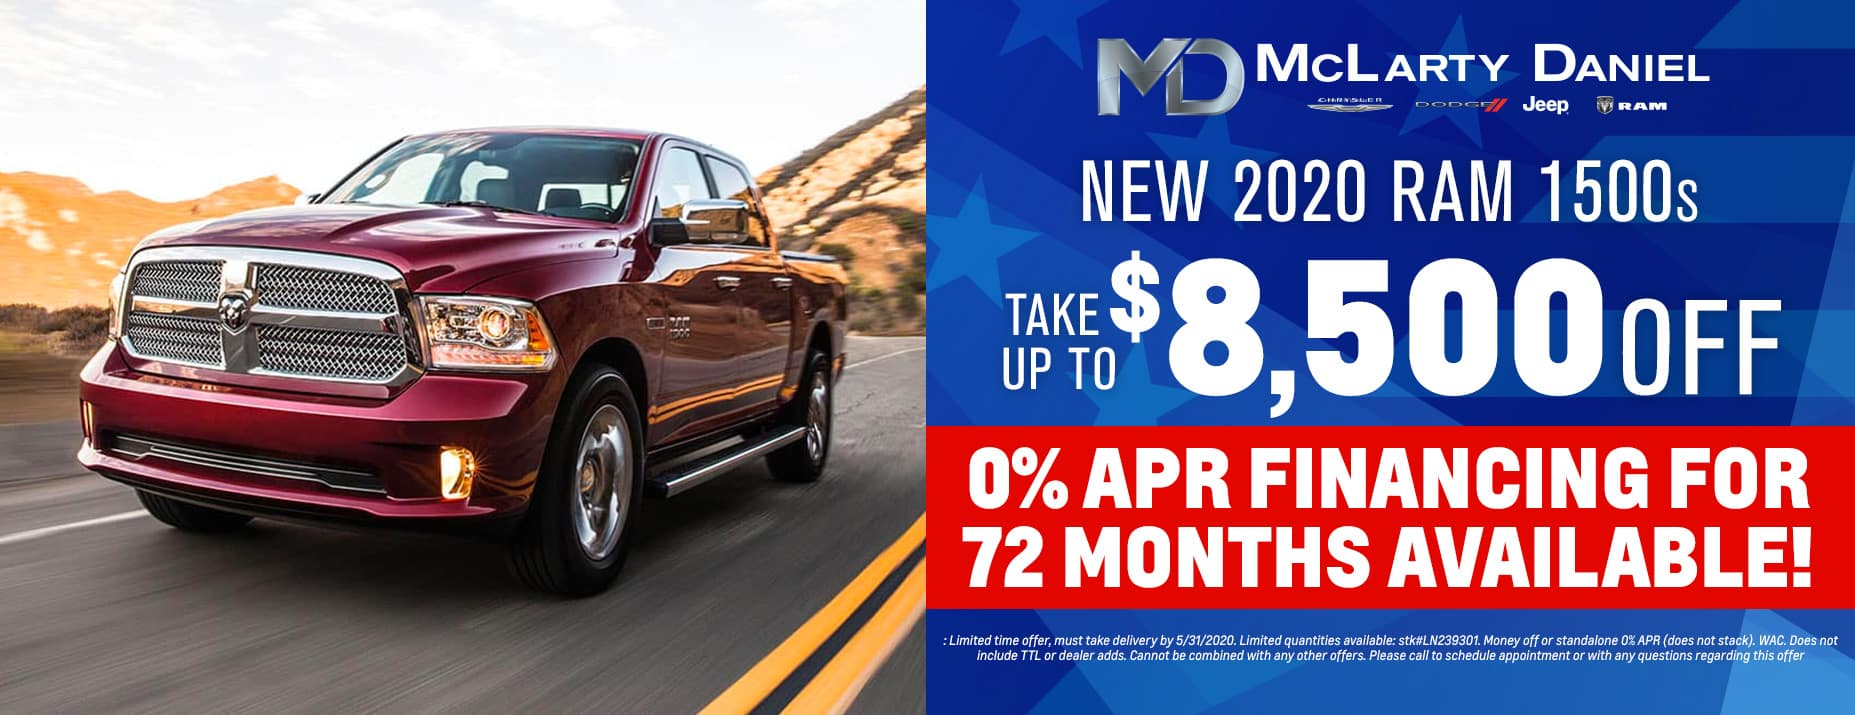 TAKE UP TO $8500 OFF 2020 ALL NEW RAM! 0% for 72 months available!